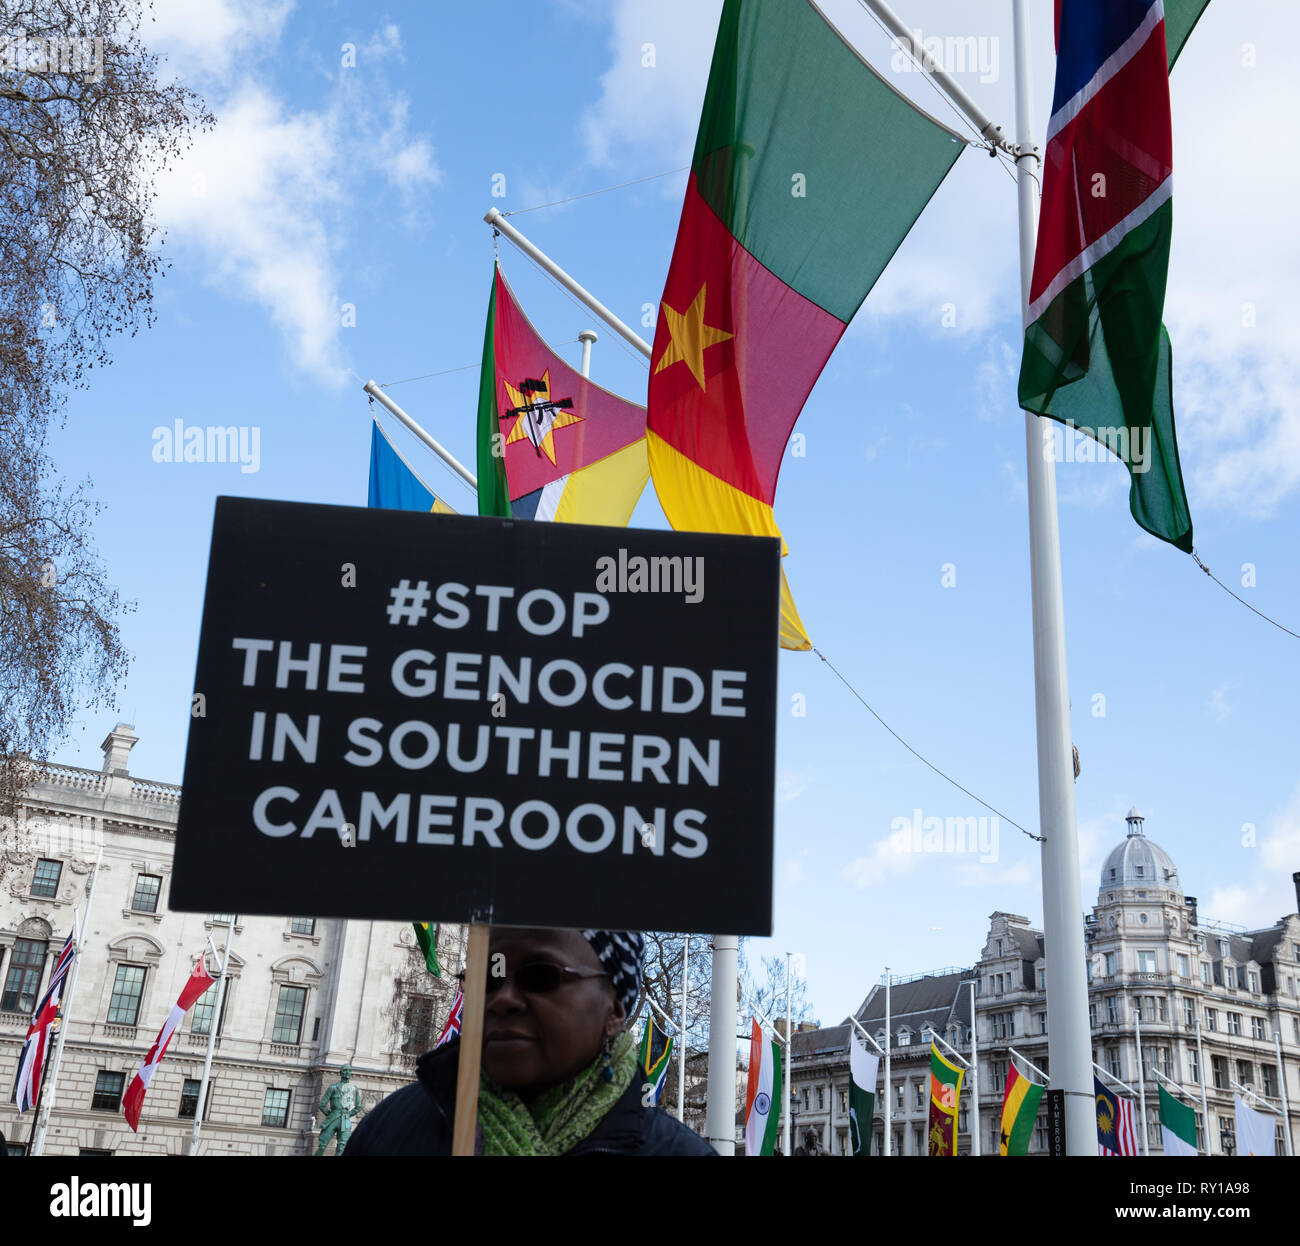 London, UK. 11th Mar, 2019. Protester demonstrates on Parliament Square, London, UK today, Commonwealth Day, against Cameroons alleged genocide. Credit: Joe/Alamy Live News - Stock Image